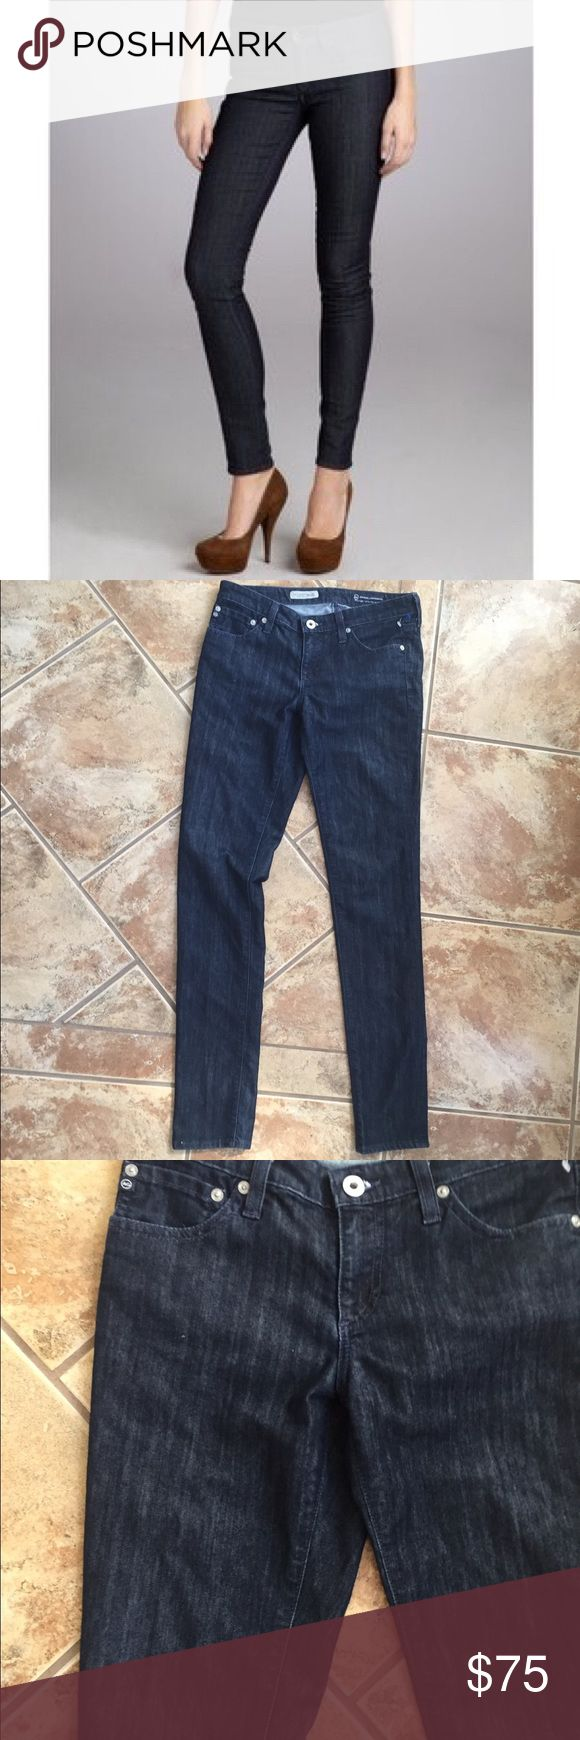 AG Adriano Goldschmied The Legging Super Skinny AG Adriano Goldschmied The Legging Super Skinny size 28 R AG Adriano Goldschmied Jeans Skinny